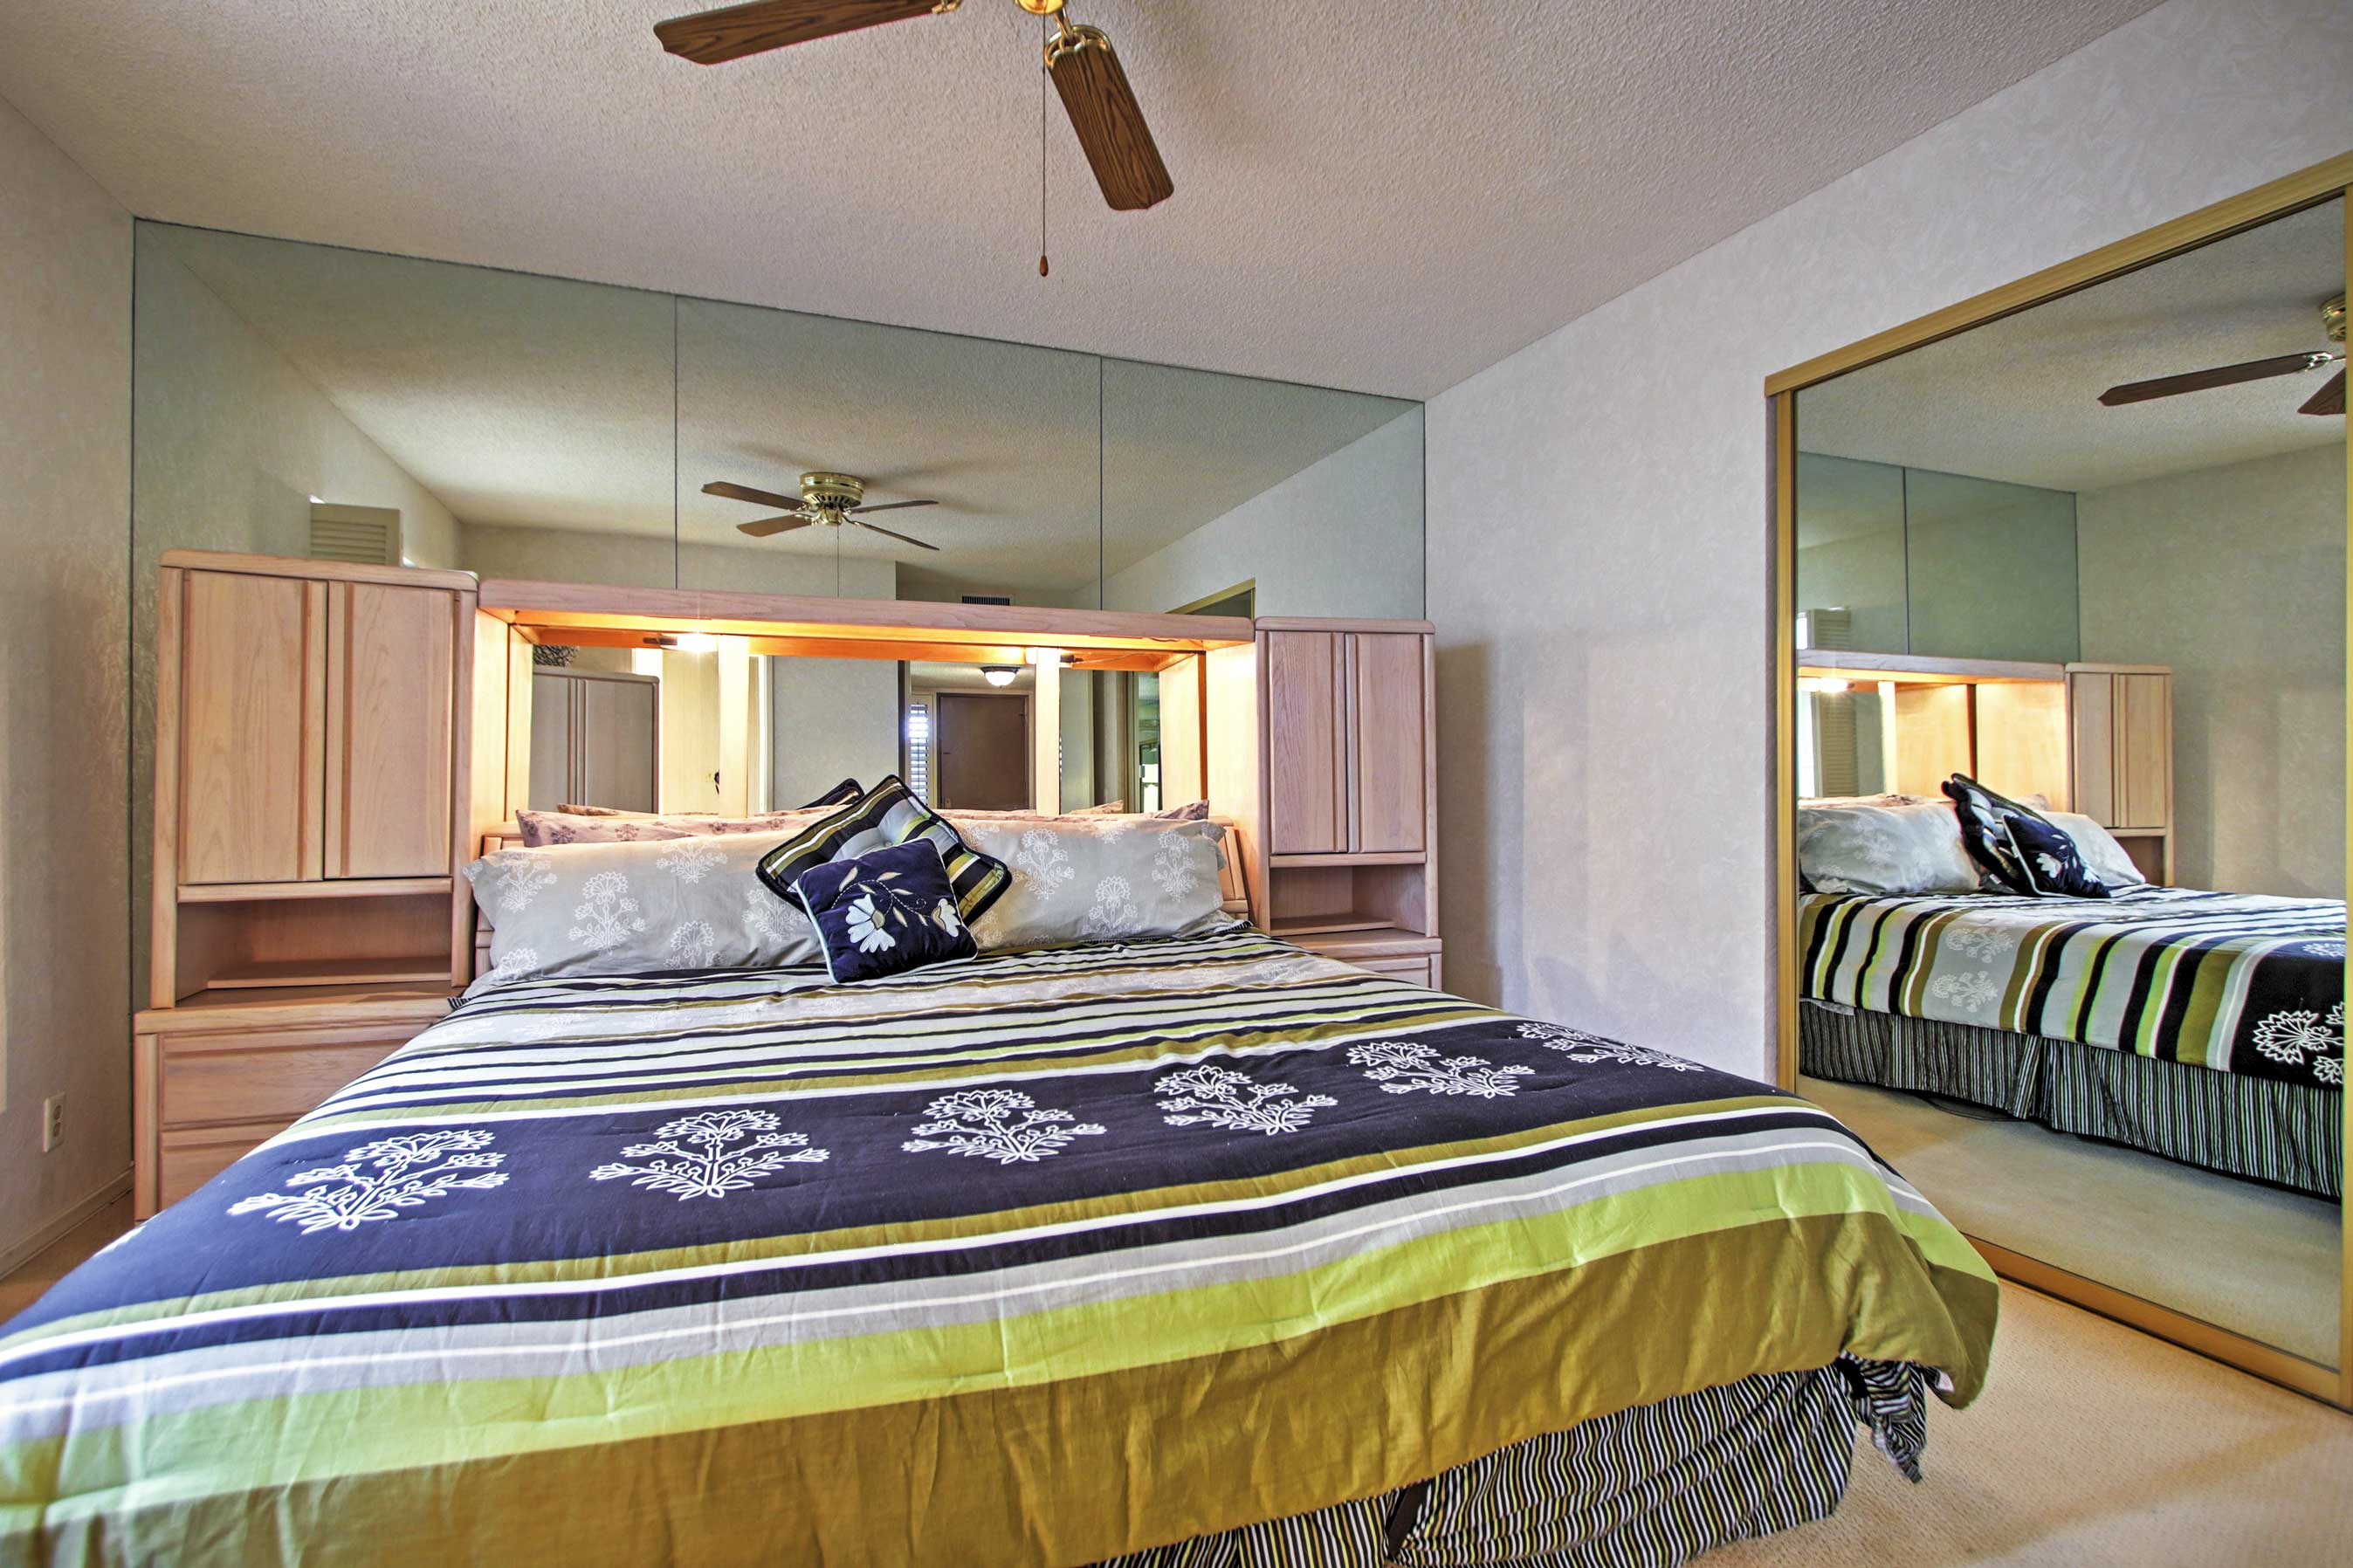 You'll find a spacious king bed in this final bedroom.